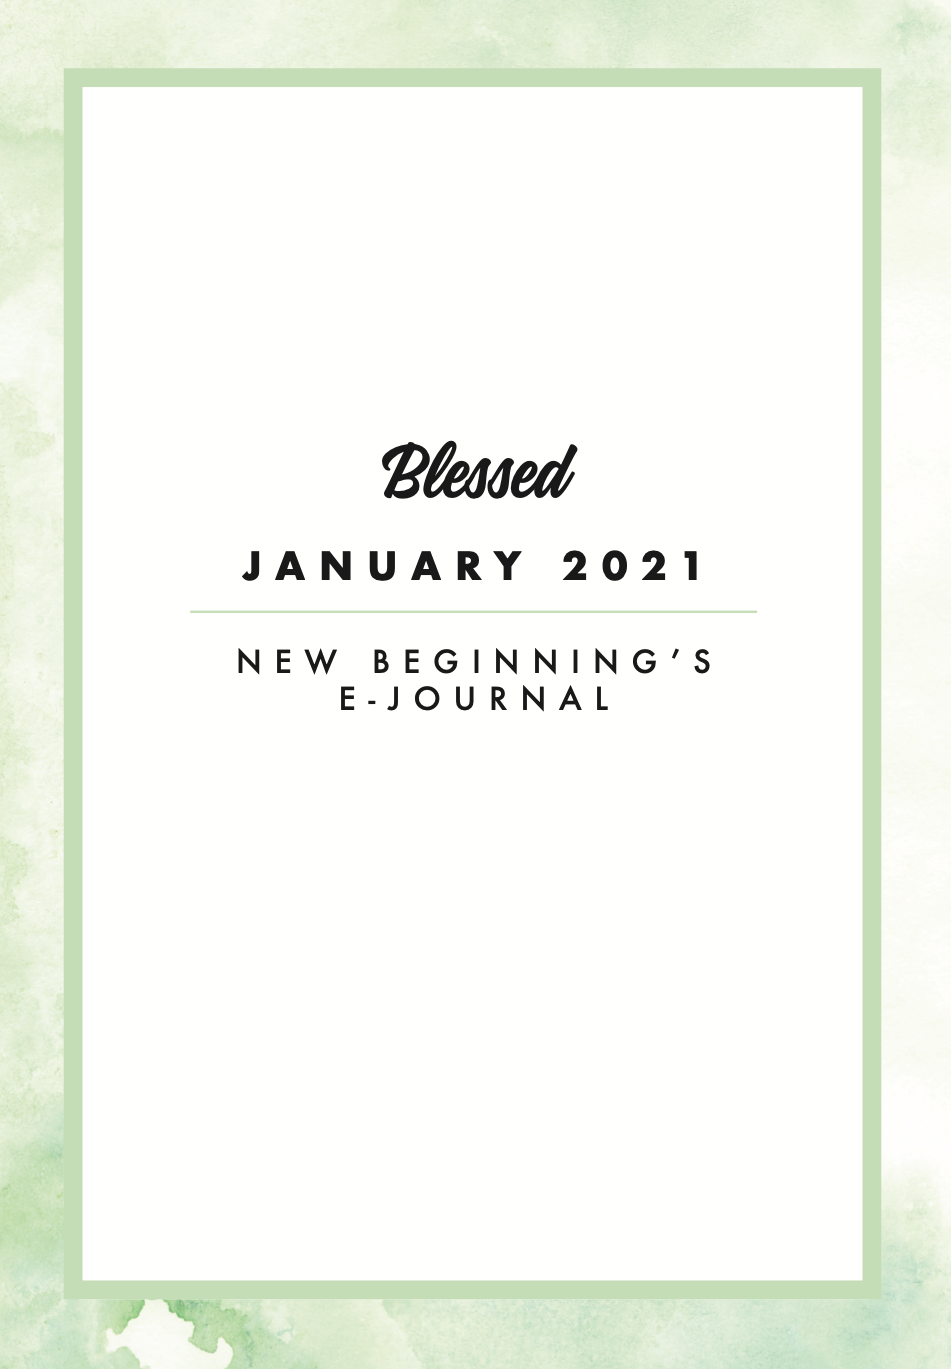 New Blessed Protein Beginnings Journal | MVMNT LMTD